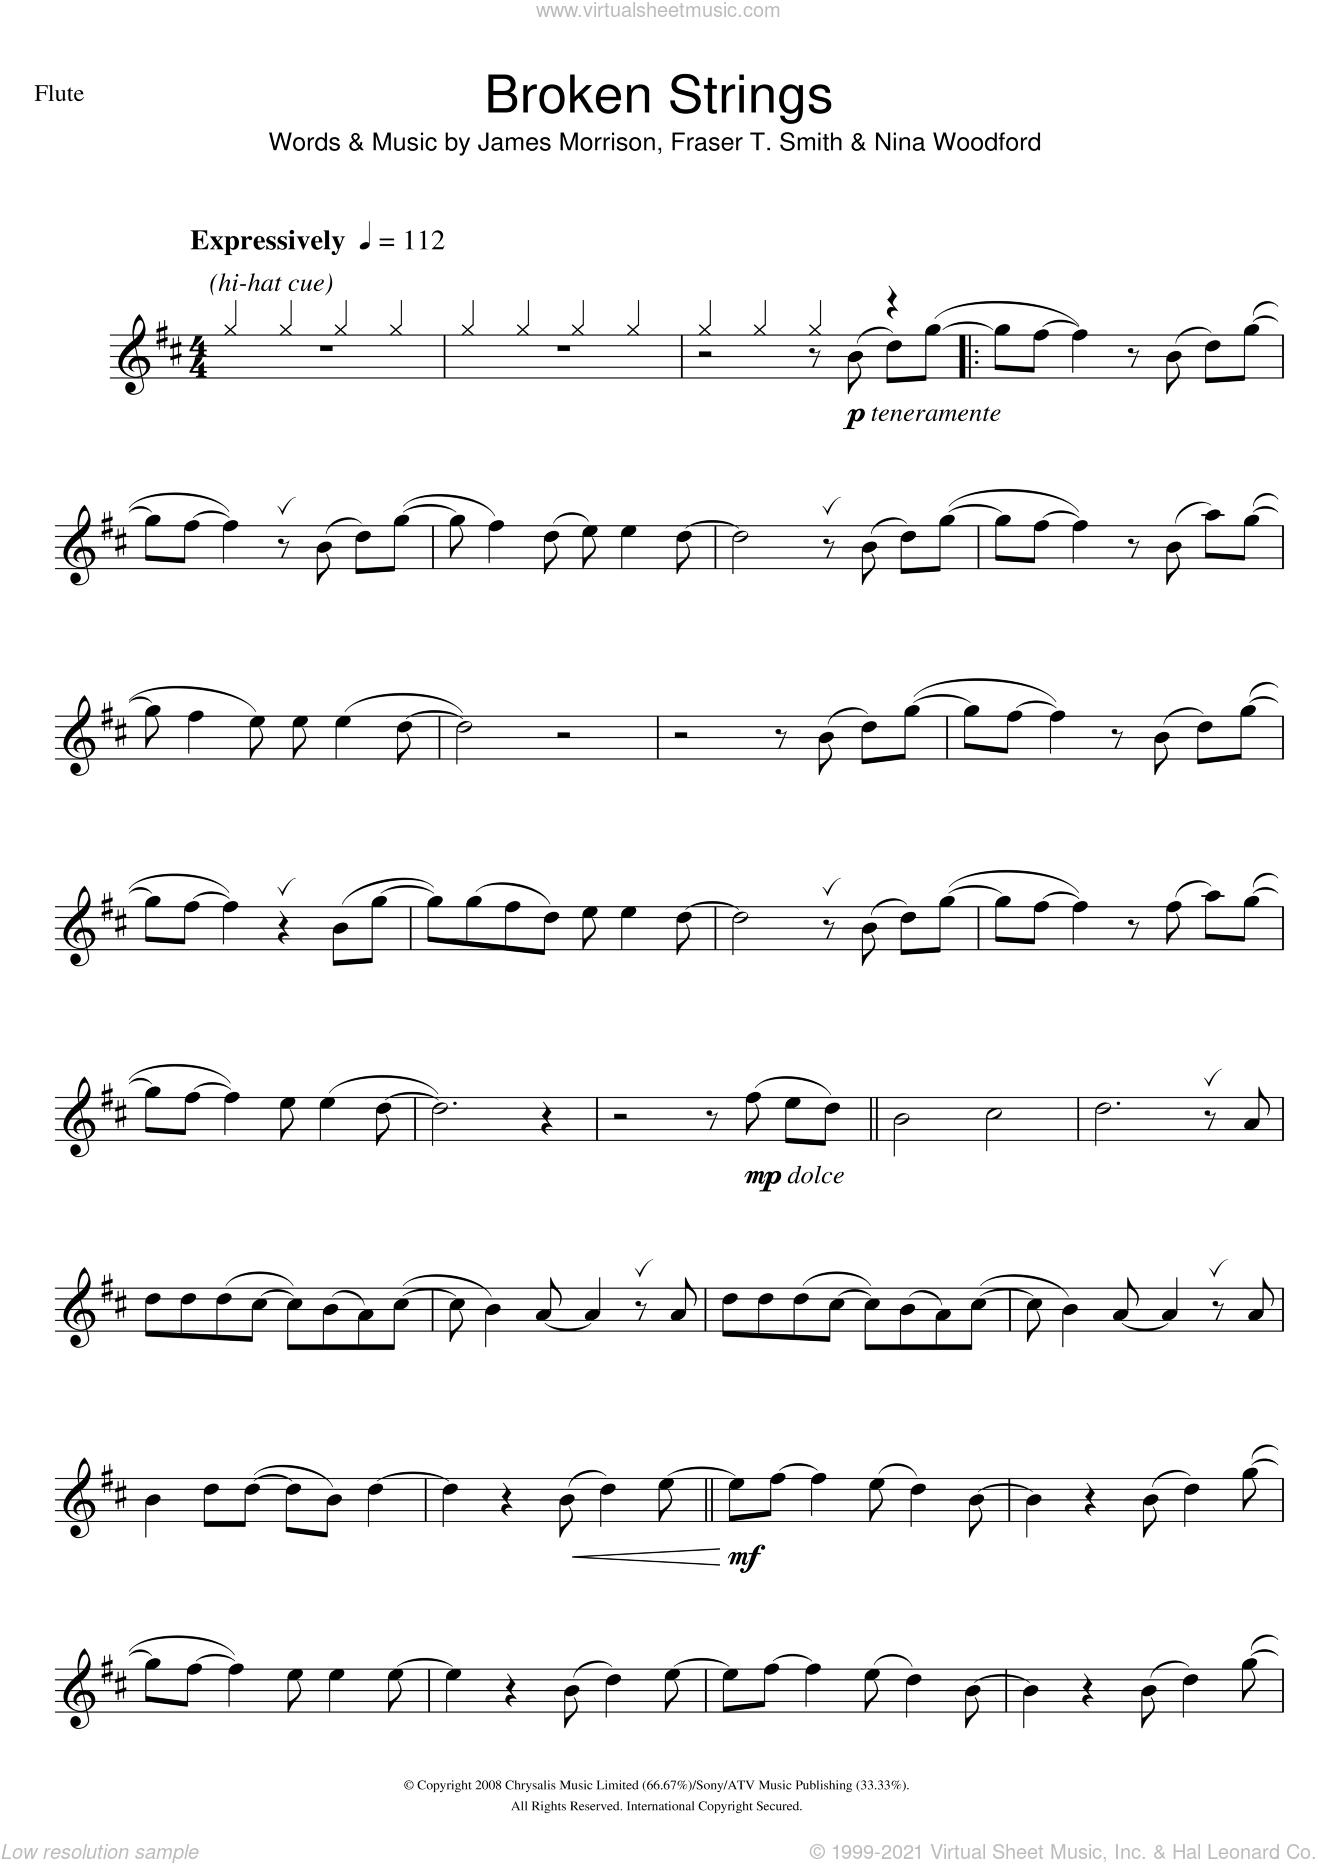 Broken Strings sheet music for flute solo by Nina Woodford, Fraser T. Smith and James Morrison. Score Image Preview.